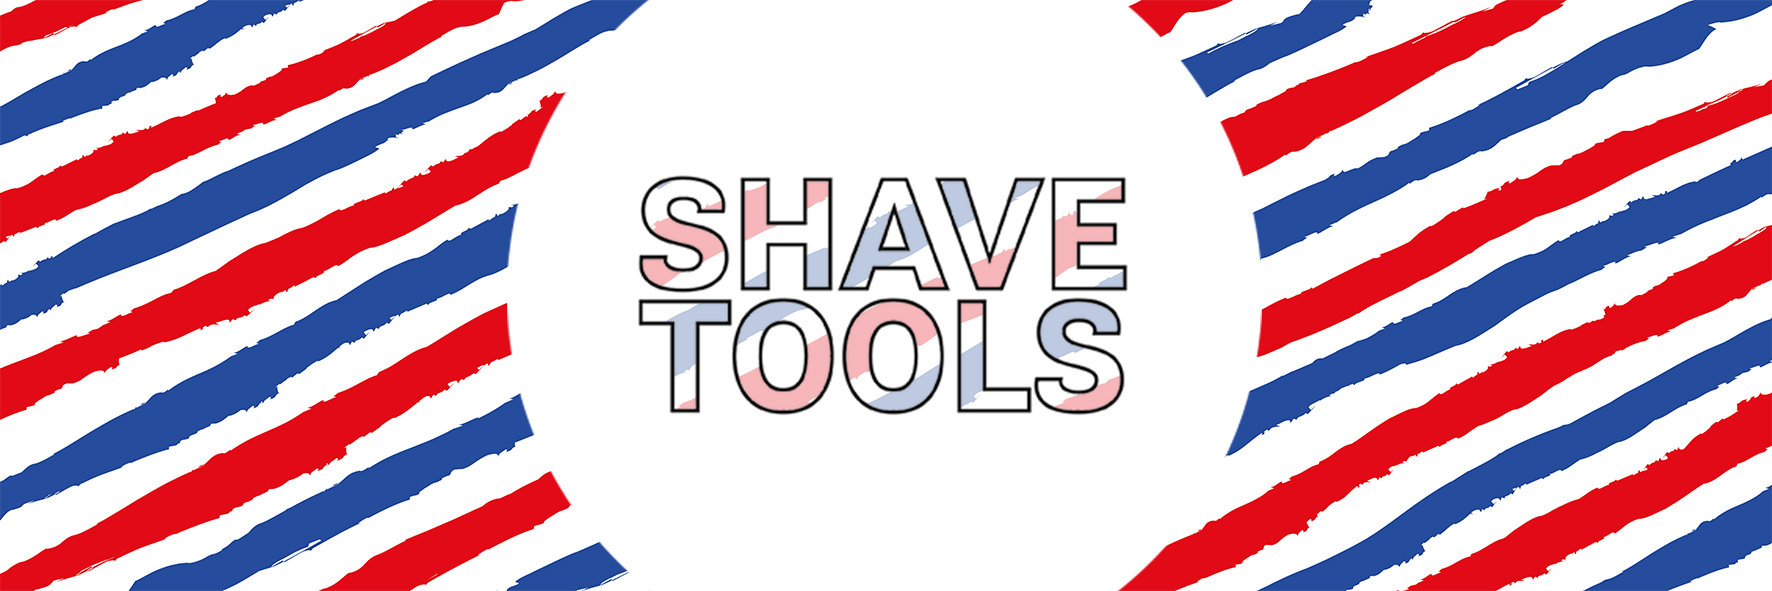 Shave-Tools